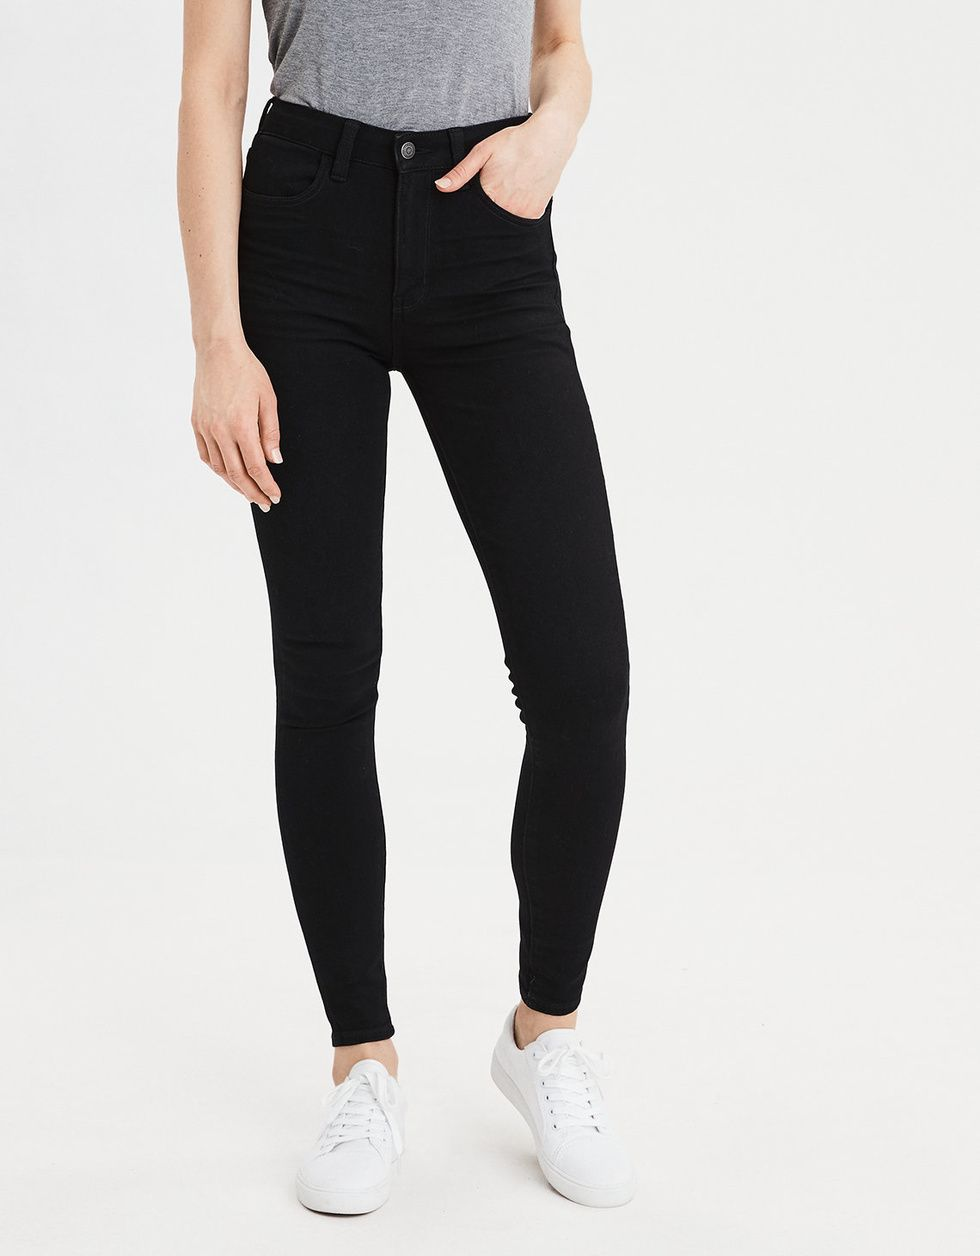 18720d5d44922 The only pair of postpartum jeans you need 🙌 - Motherly